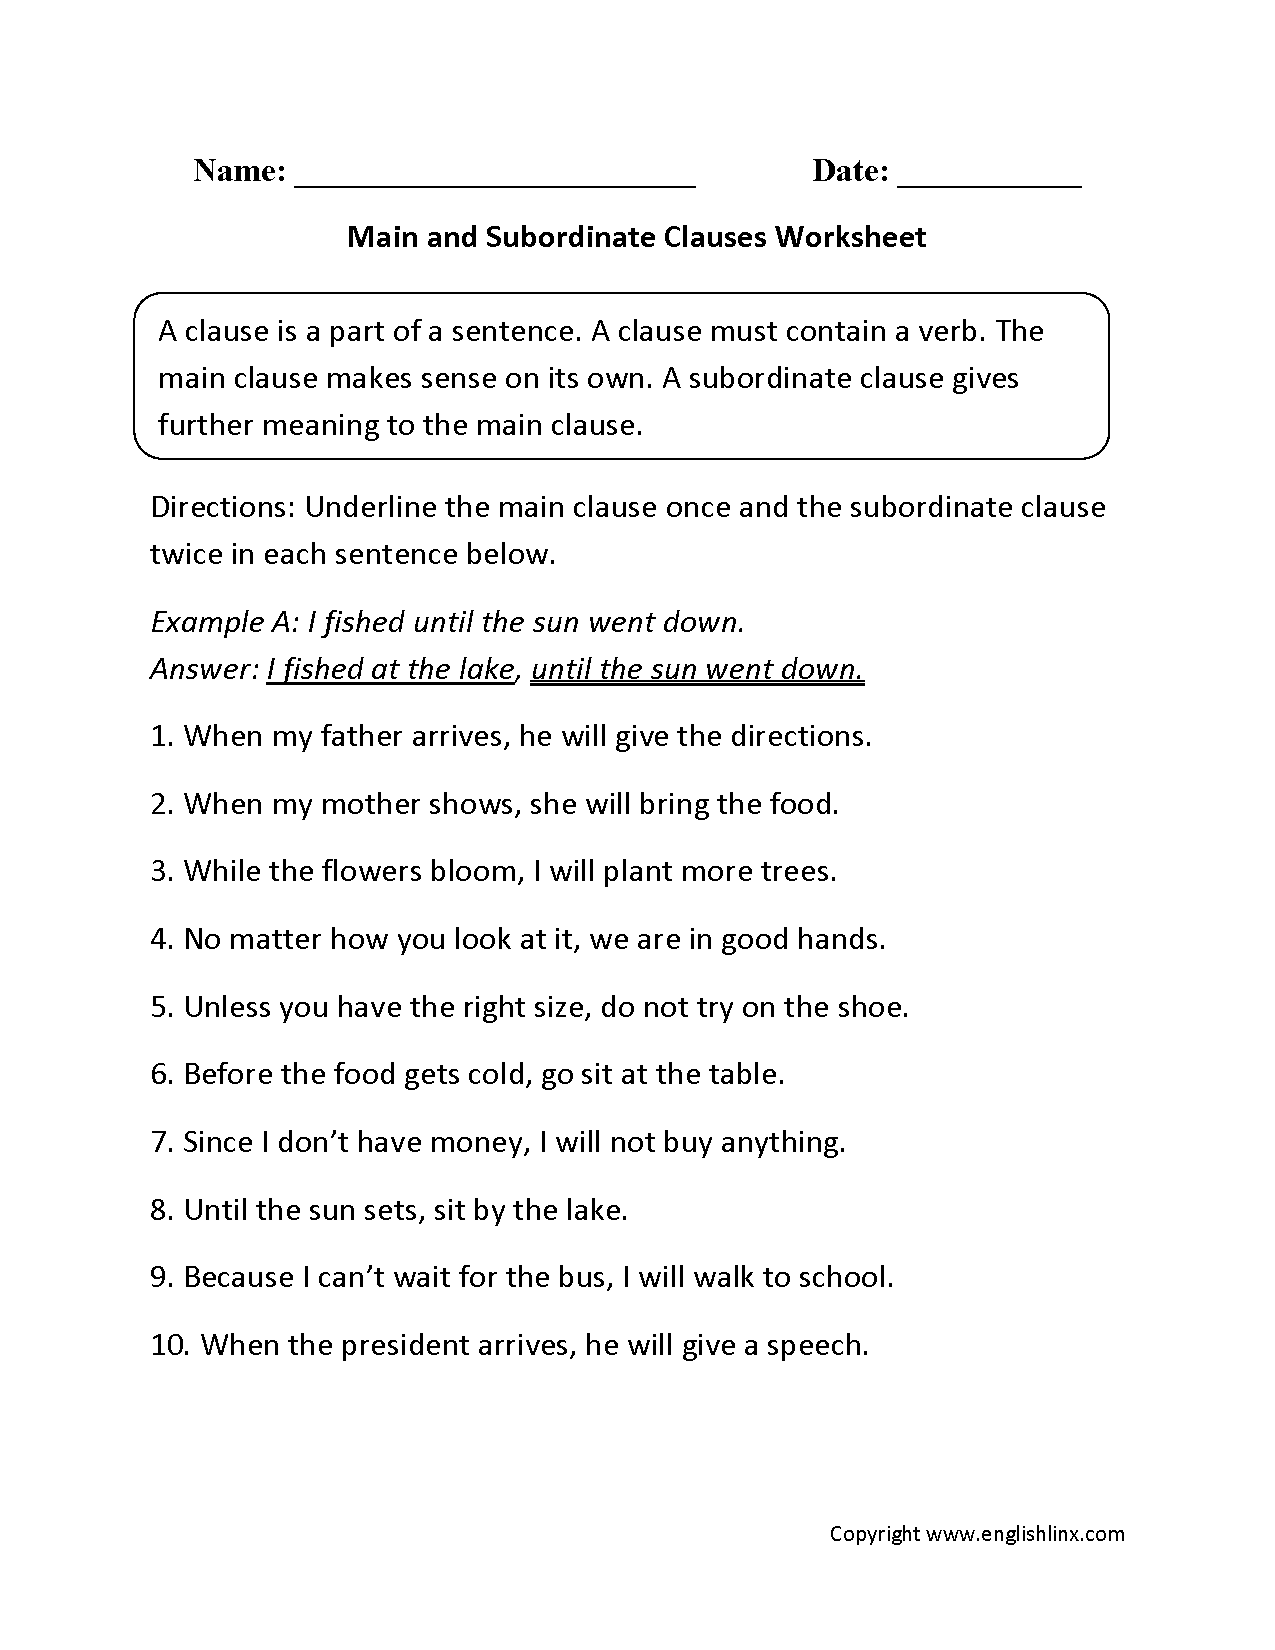 Free Worksheet Independent And Dependent Clauses Worksheets dependent and independent clauses worksheets worksheet worksheets